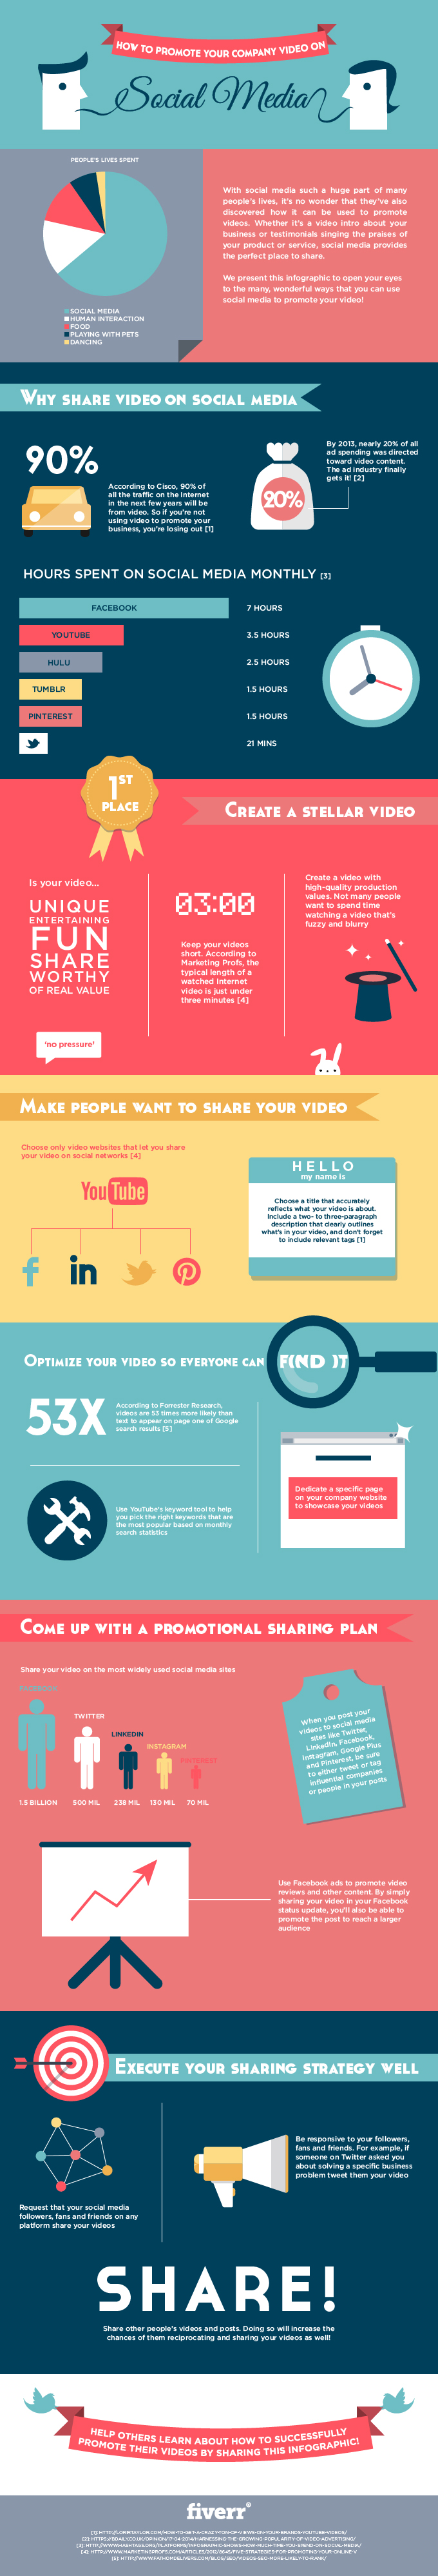 How-to-Promote-Your-company-Video-on-Social-Media